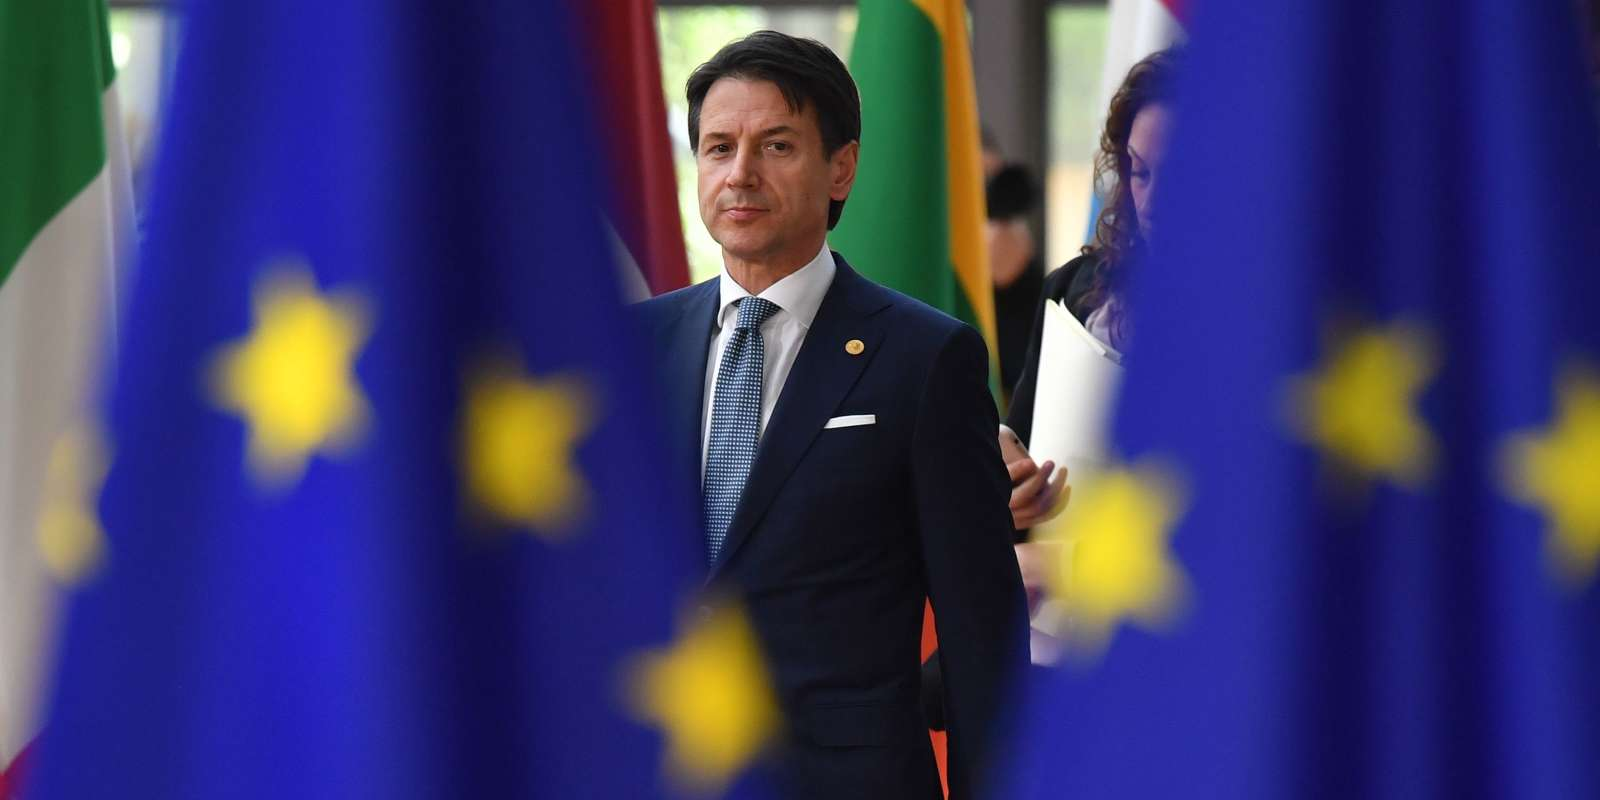 Italian Prime Minister Giuseppe Conte arrives to take part in an European Union leaders' summit focused on migration, Brexit and eurozone reforms on June 28, 2018 at the EU headquarters in Brussels. The two-day meeting in Brussels is expected to be dominated by deep divisions over migration, with German Chancellor saying the issue could decide the fate of the bloc itself. / AFP / Ben STANSALL